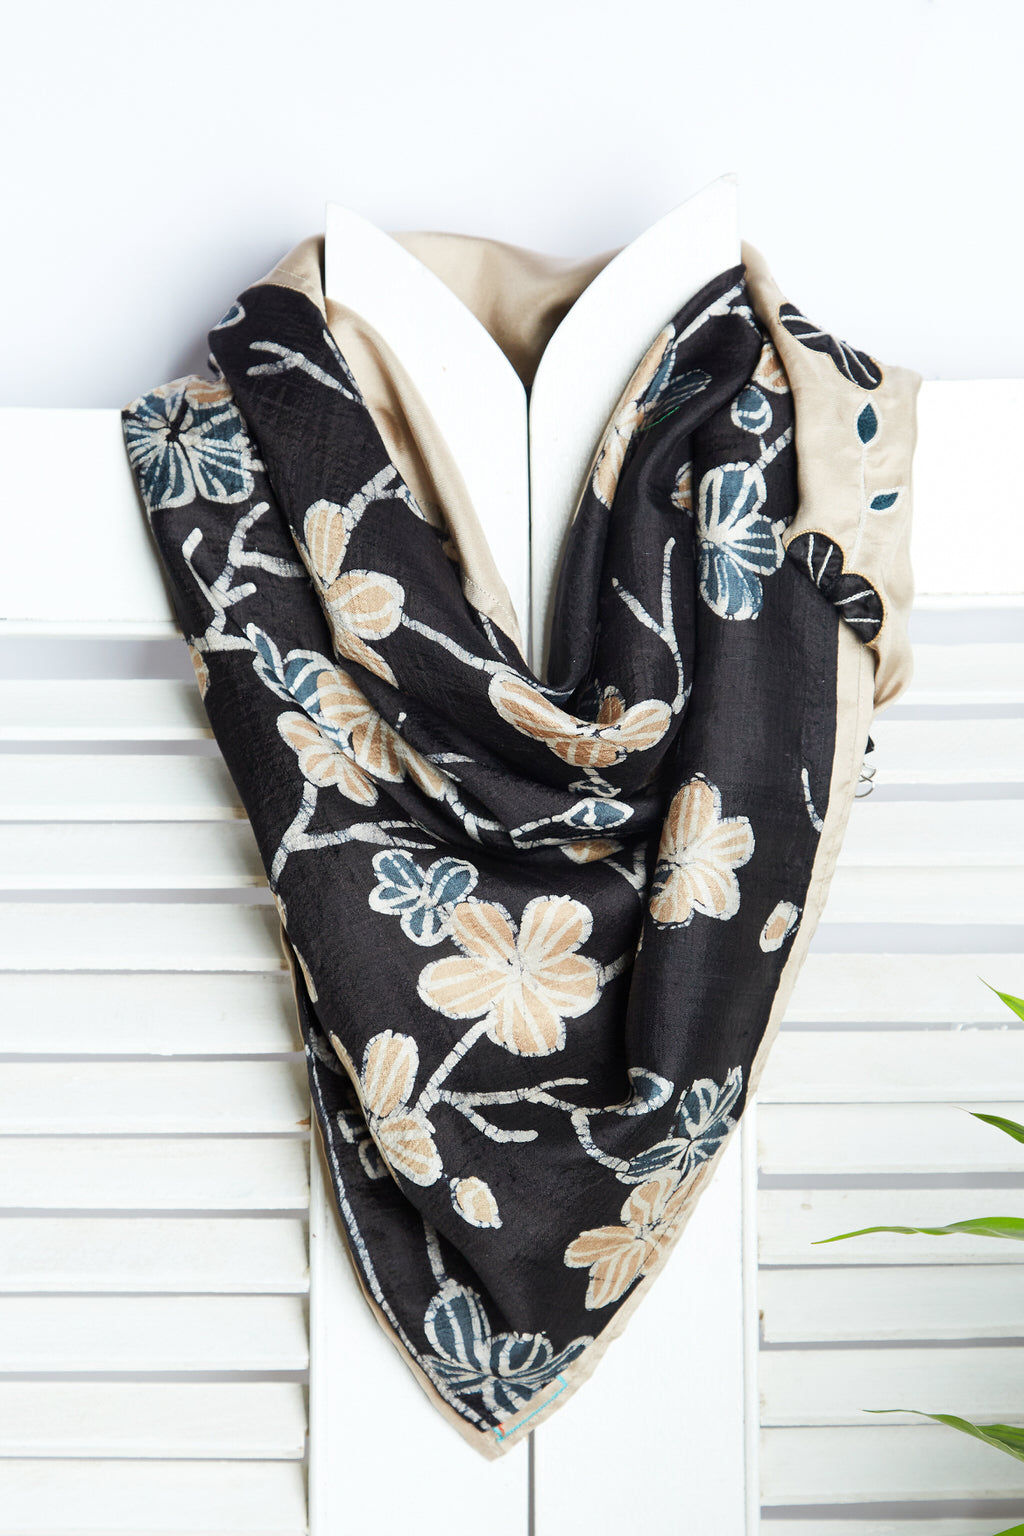 A Garden of Delight - Batik Print Beige & Black Silk Square Scarf